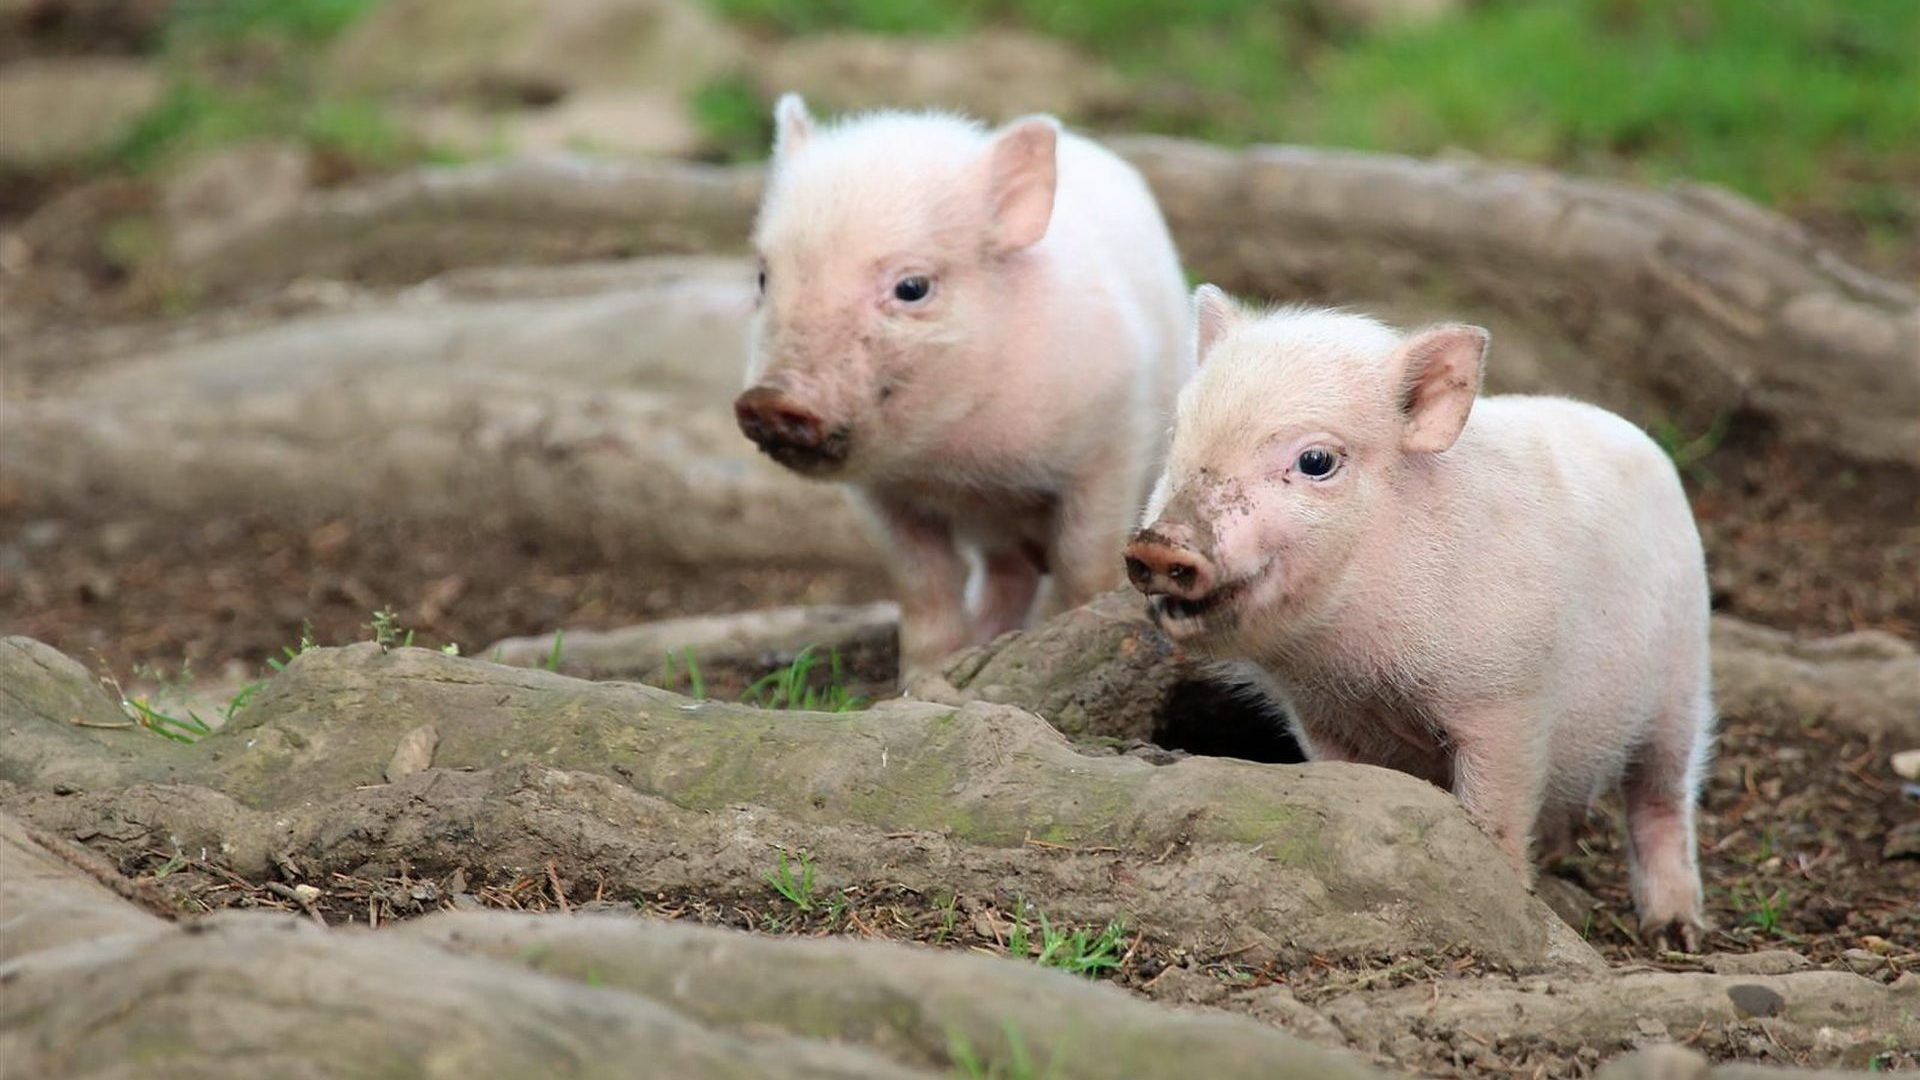 Two Baby Pigs Cute Wallpaper 1920x1080 Need IPhone 6S Plus Background For IPhone6SPlus Follow 3Wallpapers Backgrounds